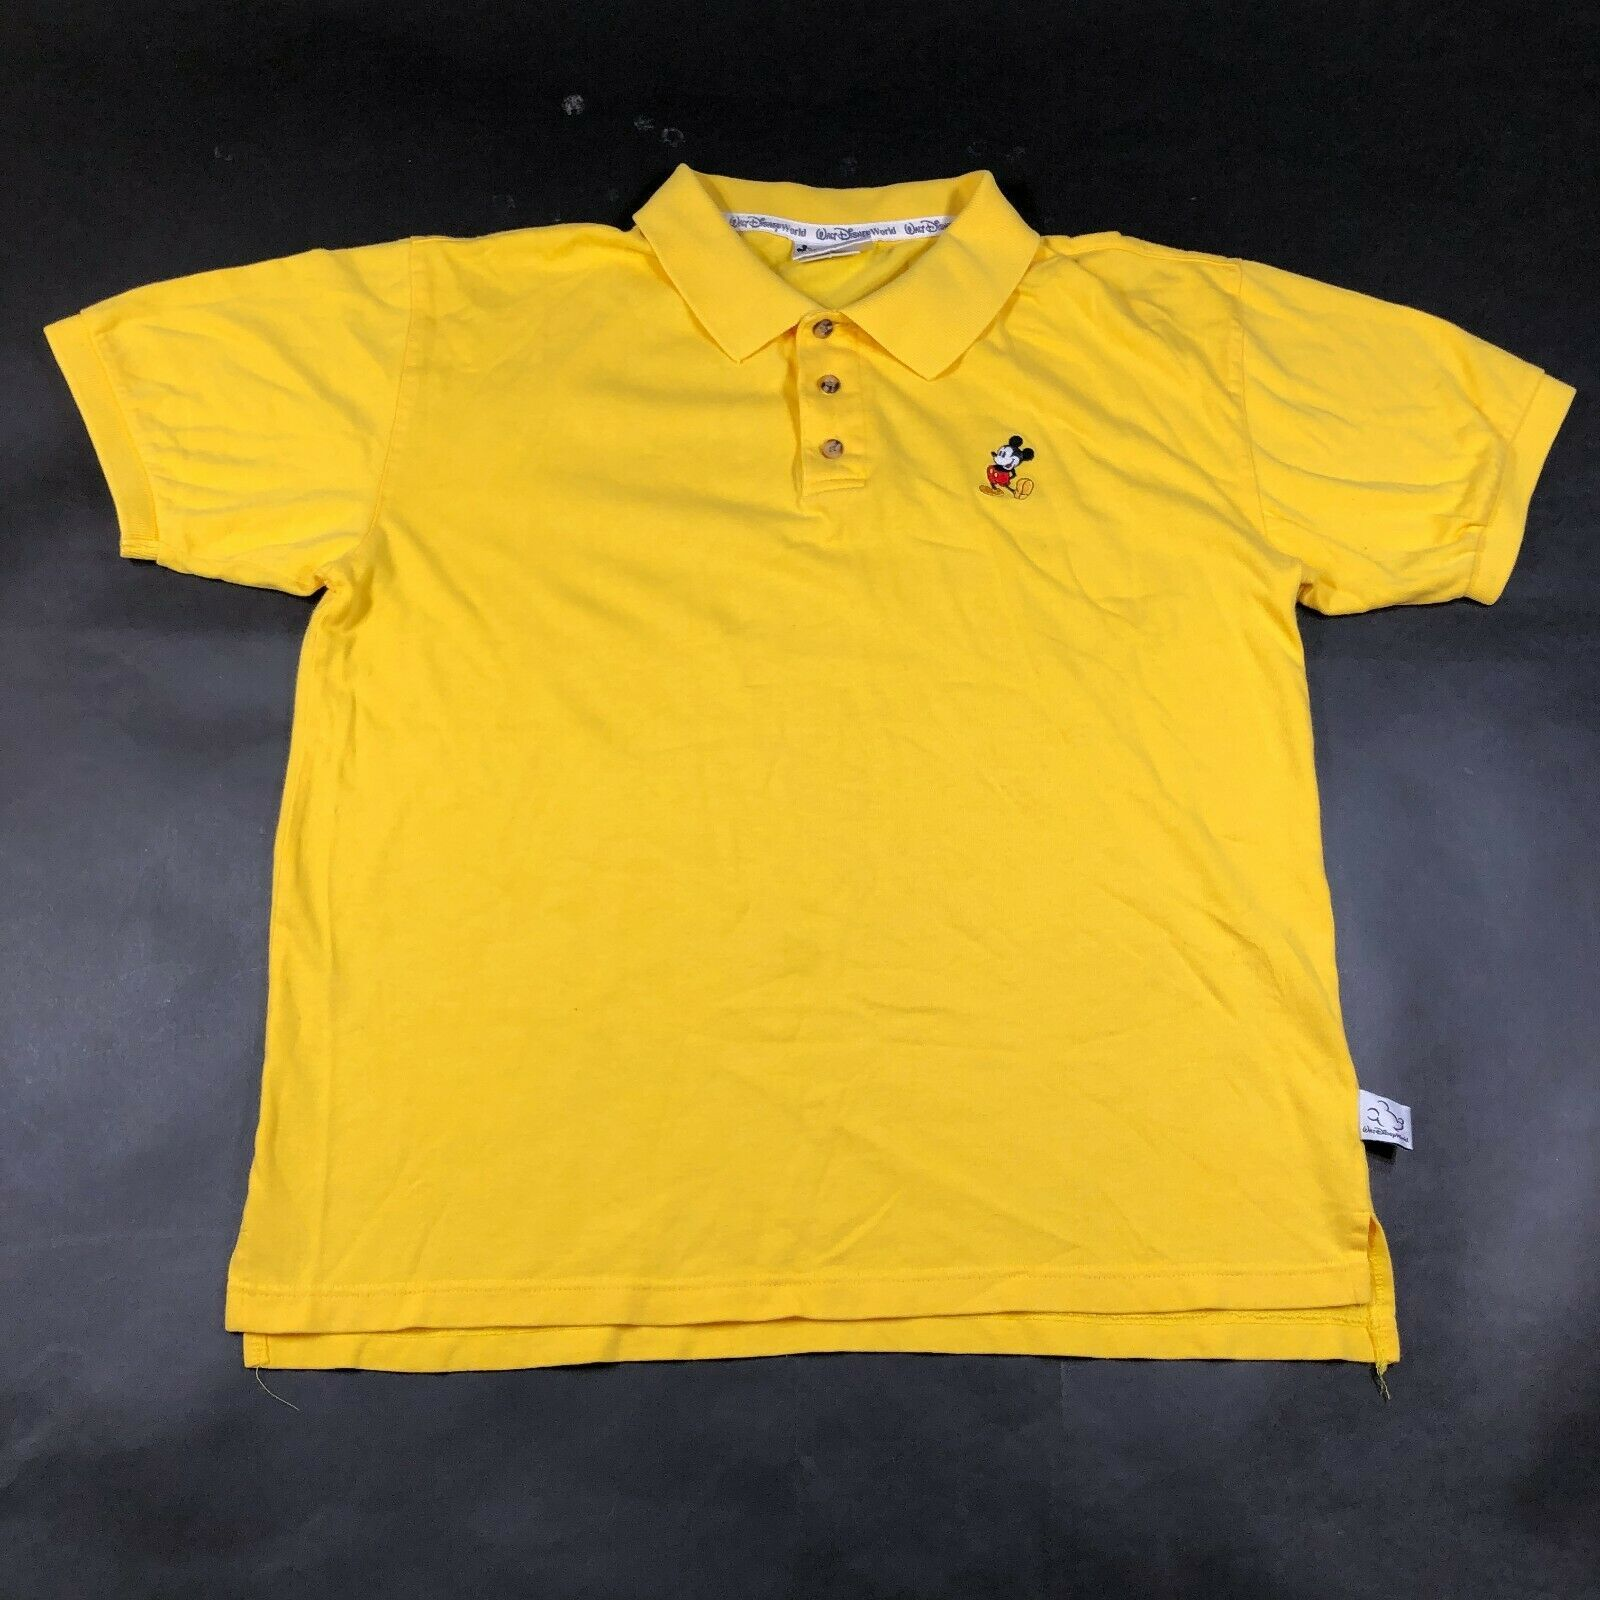 Walt Disney World Polo Shirt Mens S Yellow Embroidered Mickey Mouse Short Sleeve - $14.96